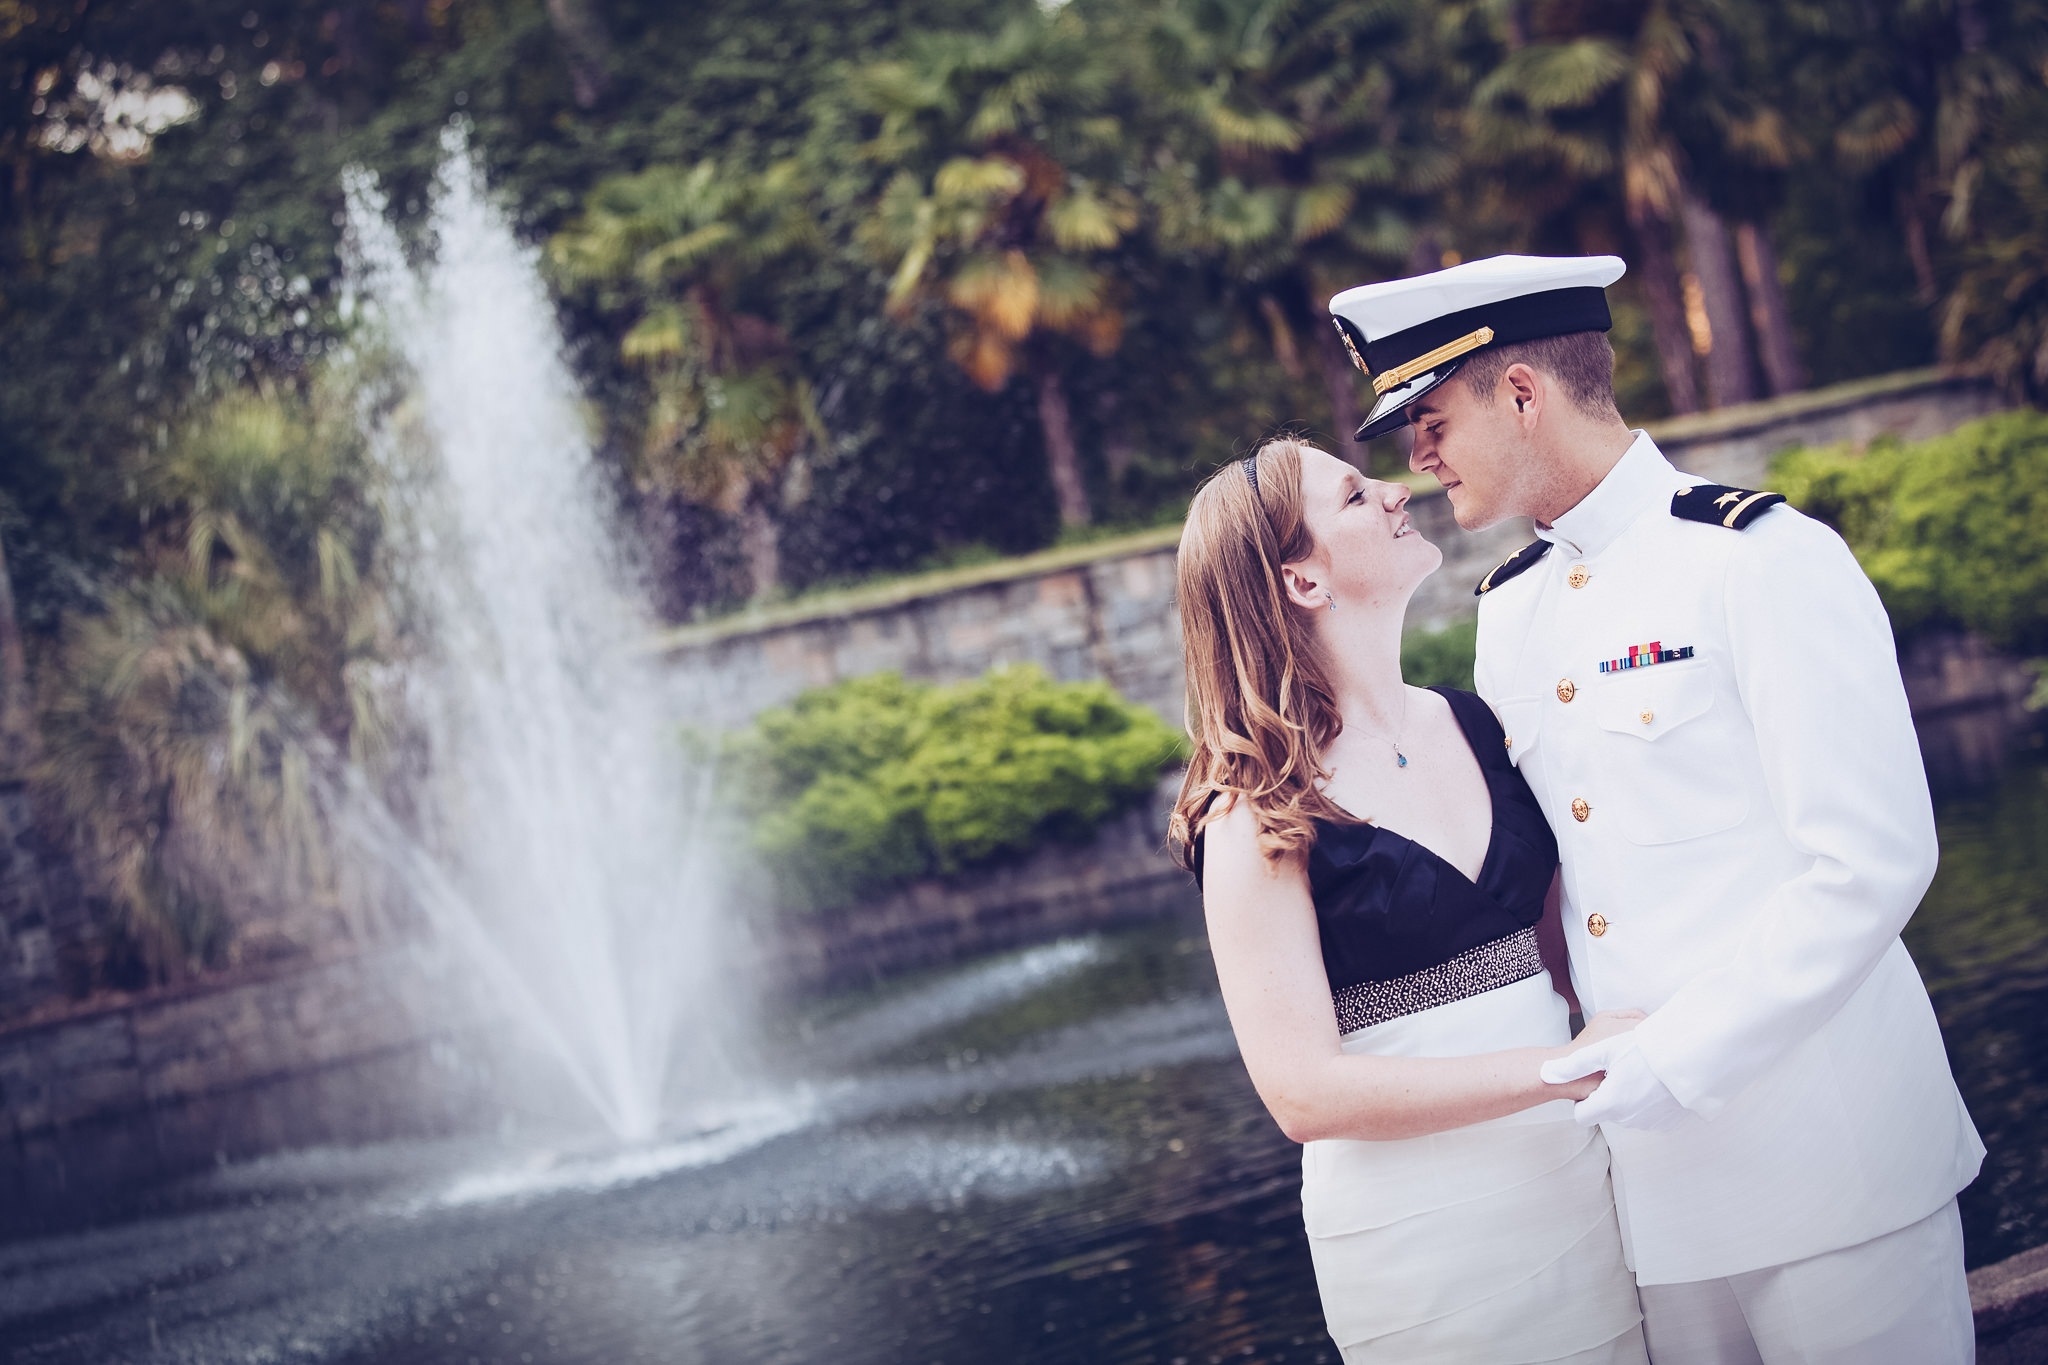 norfolk-botanical-garden-engagement-photograph-cecelia-ian.jpg